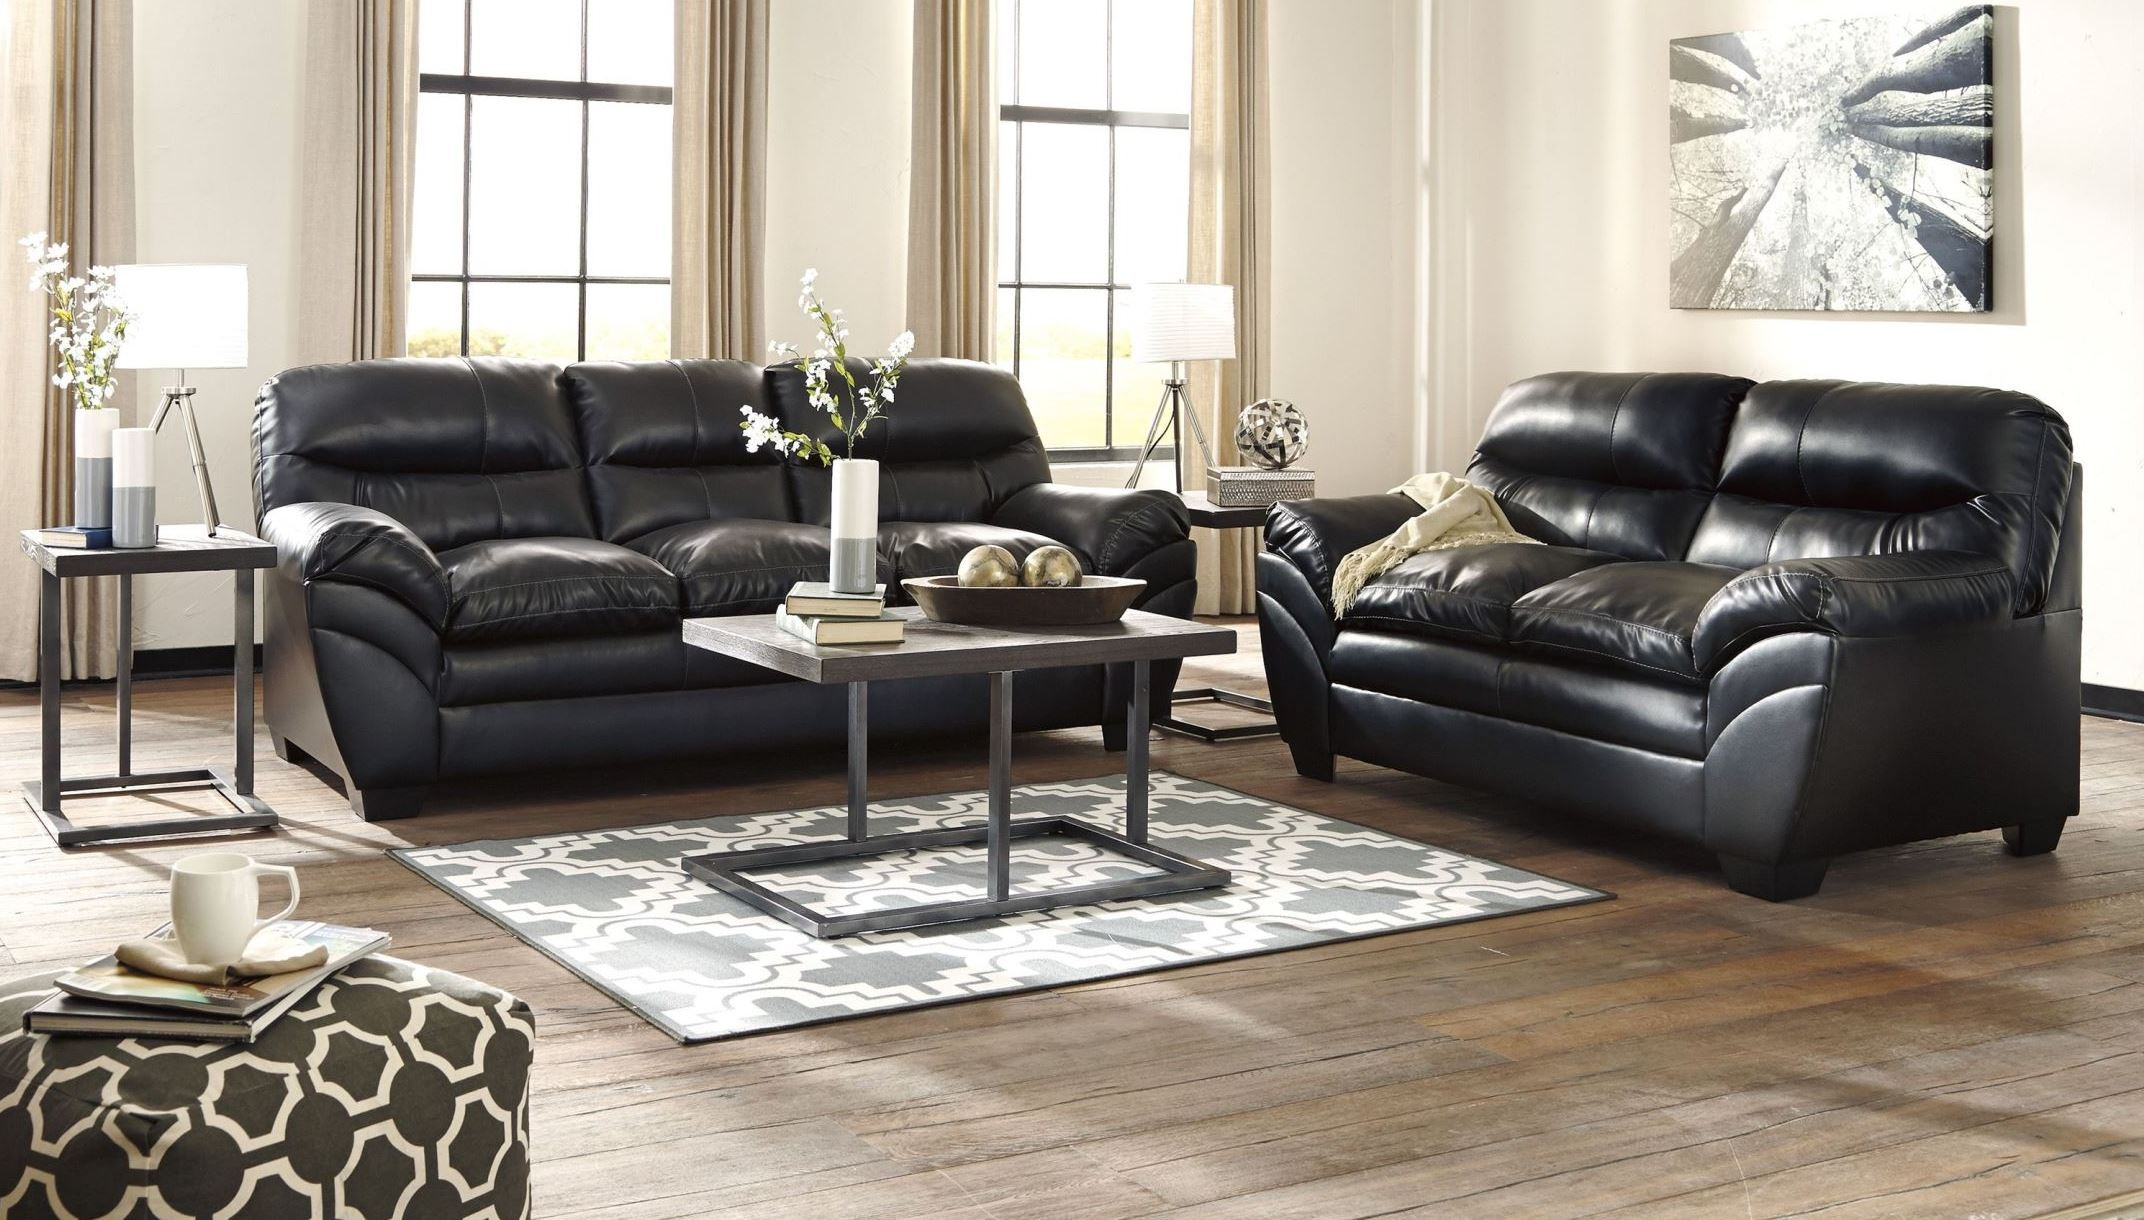 Tassler durablend black living room set from ashley for Black living room furniture sets